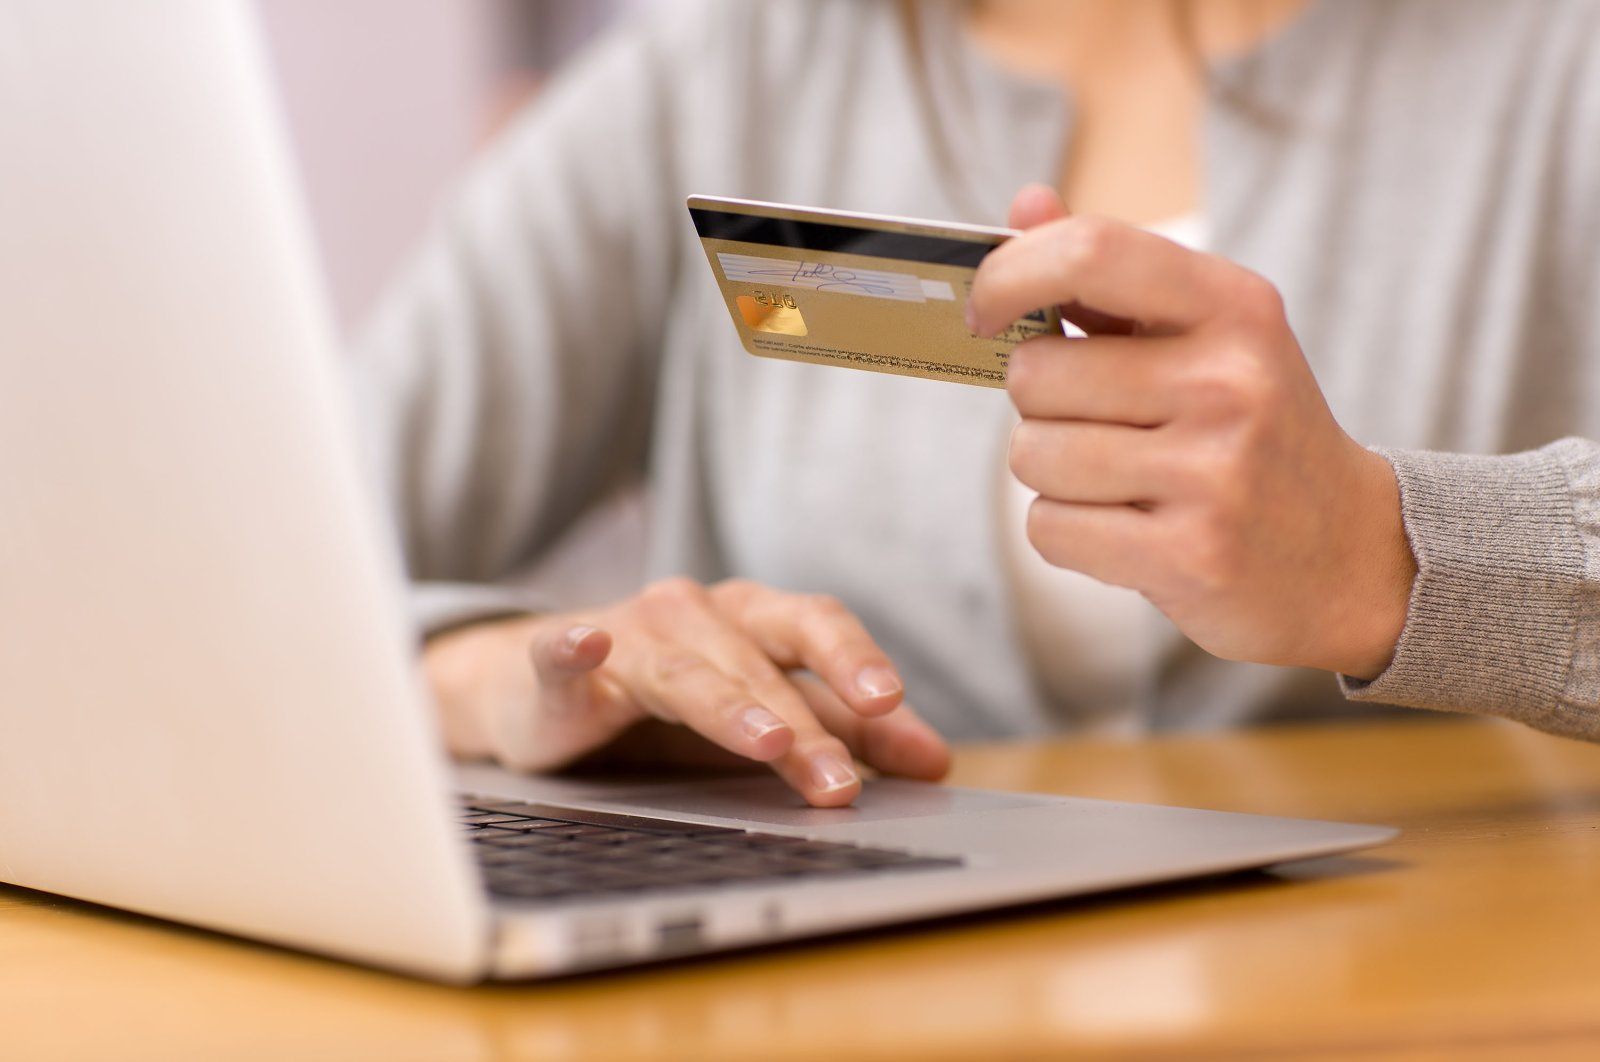 E-commerce volume in Turkey expanded by 64% in the first half of 2020. (Shutterstock Photo)